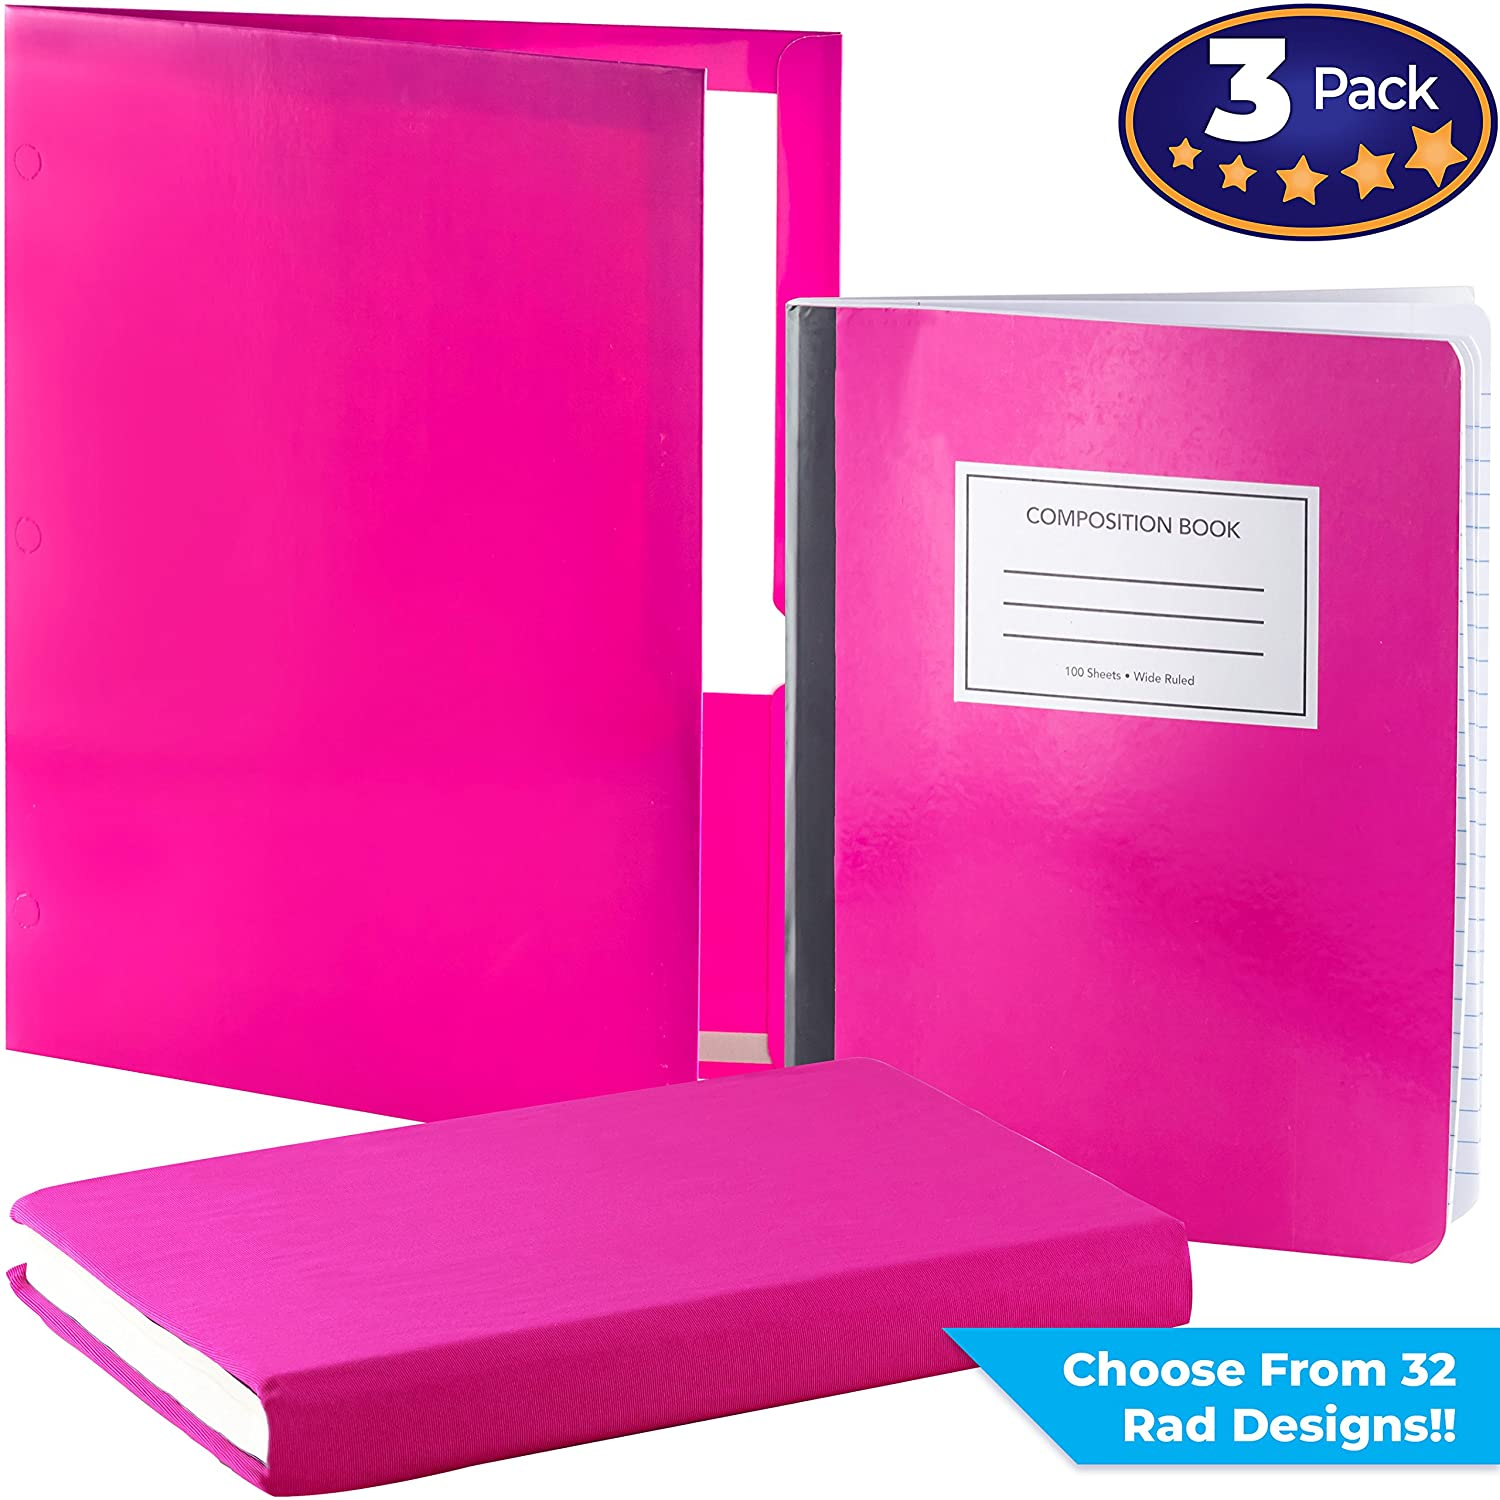 Matching Book Cover, Folder and Composition Notebook Pack. Our Set Of Stretchable Textbook Protector with a Durable Portfolio and Note Pad Is An Essential Supply to Keep Students Organized In School Eucatus